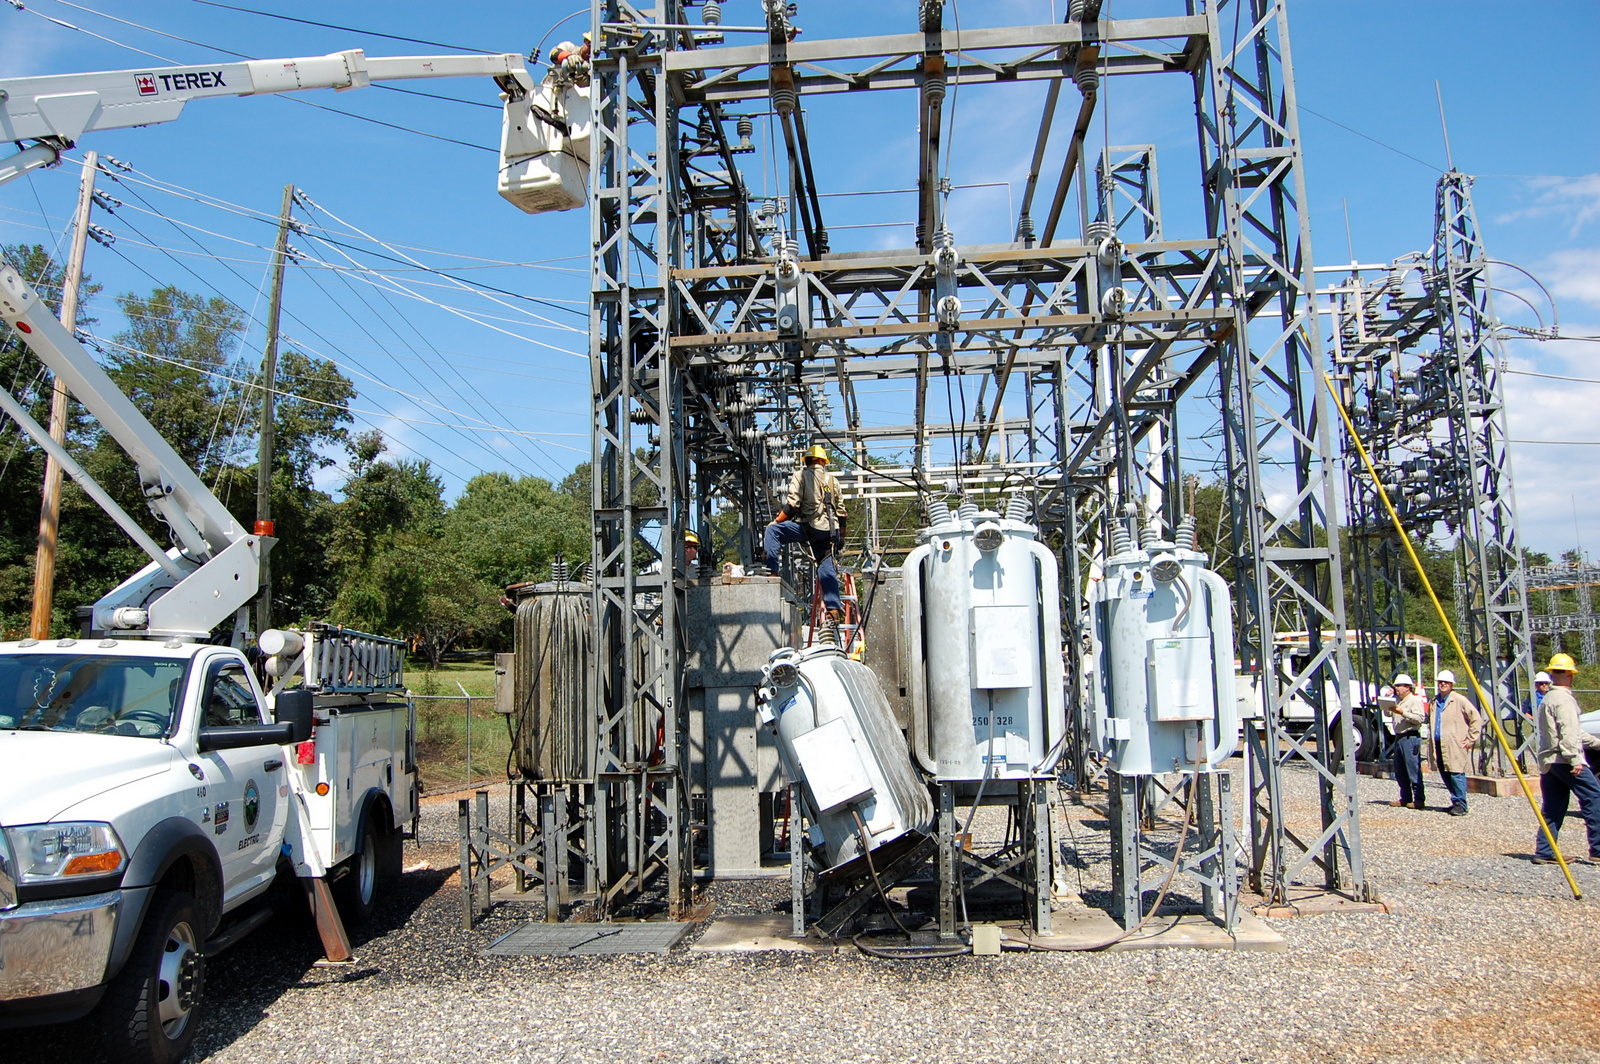 Equipment Malfunction Causes Power Outage